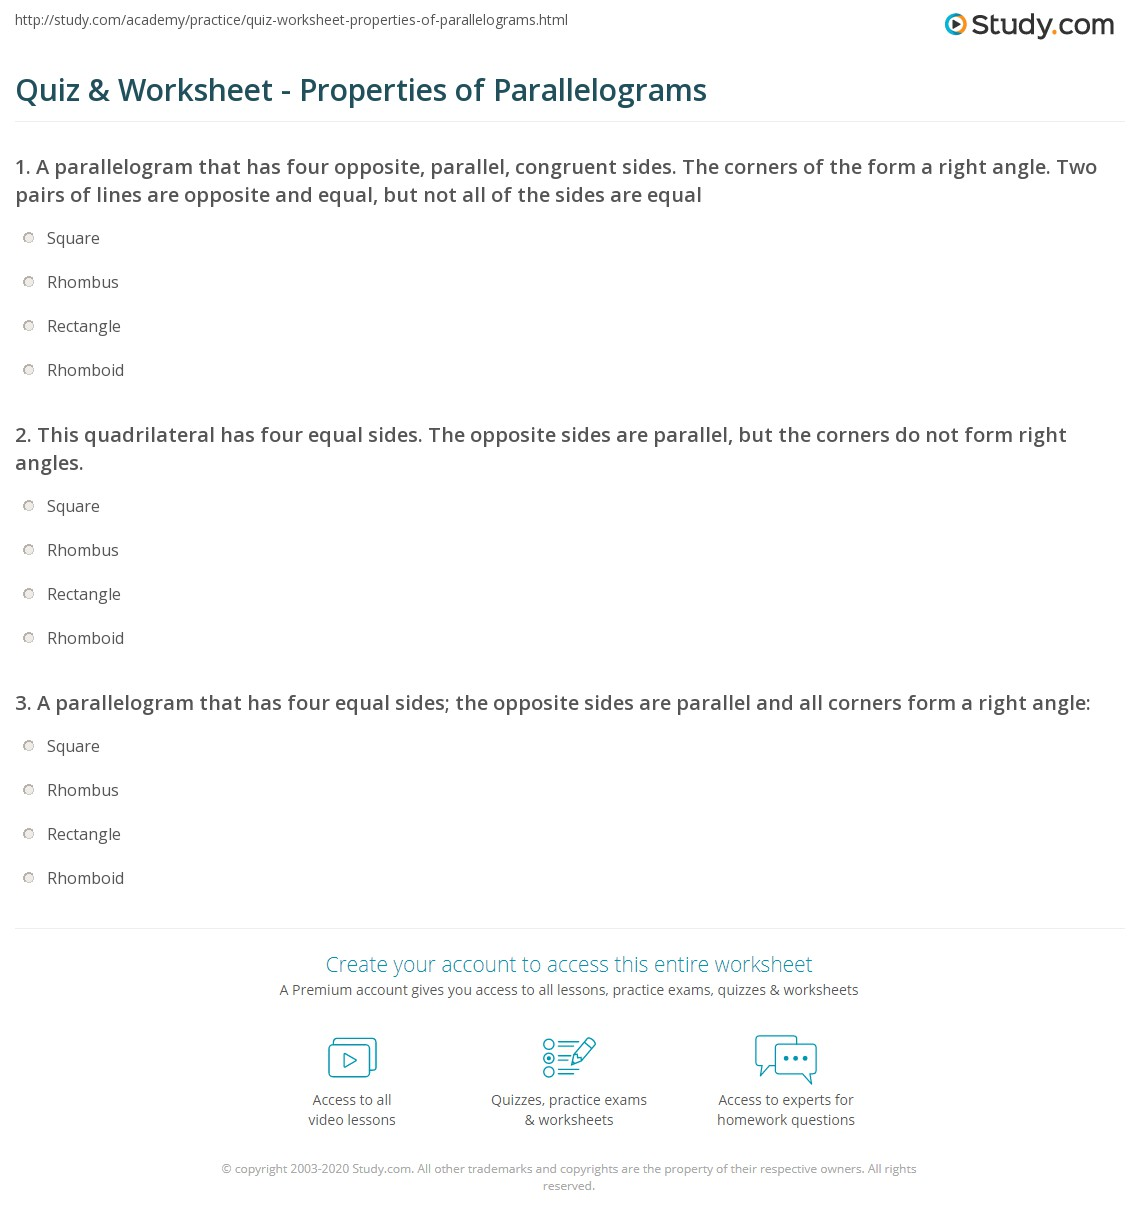 Worksheets Properties Of Parallelograms Worksheet quiz worksheet properties of parallelograms study com print parallelogram in geometry definition shapes worksheet